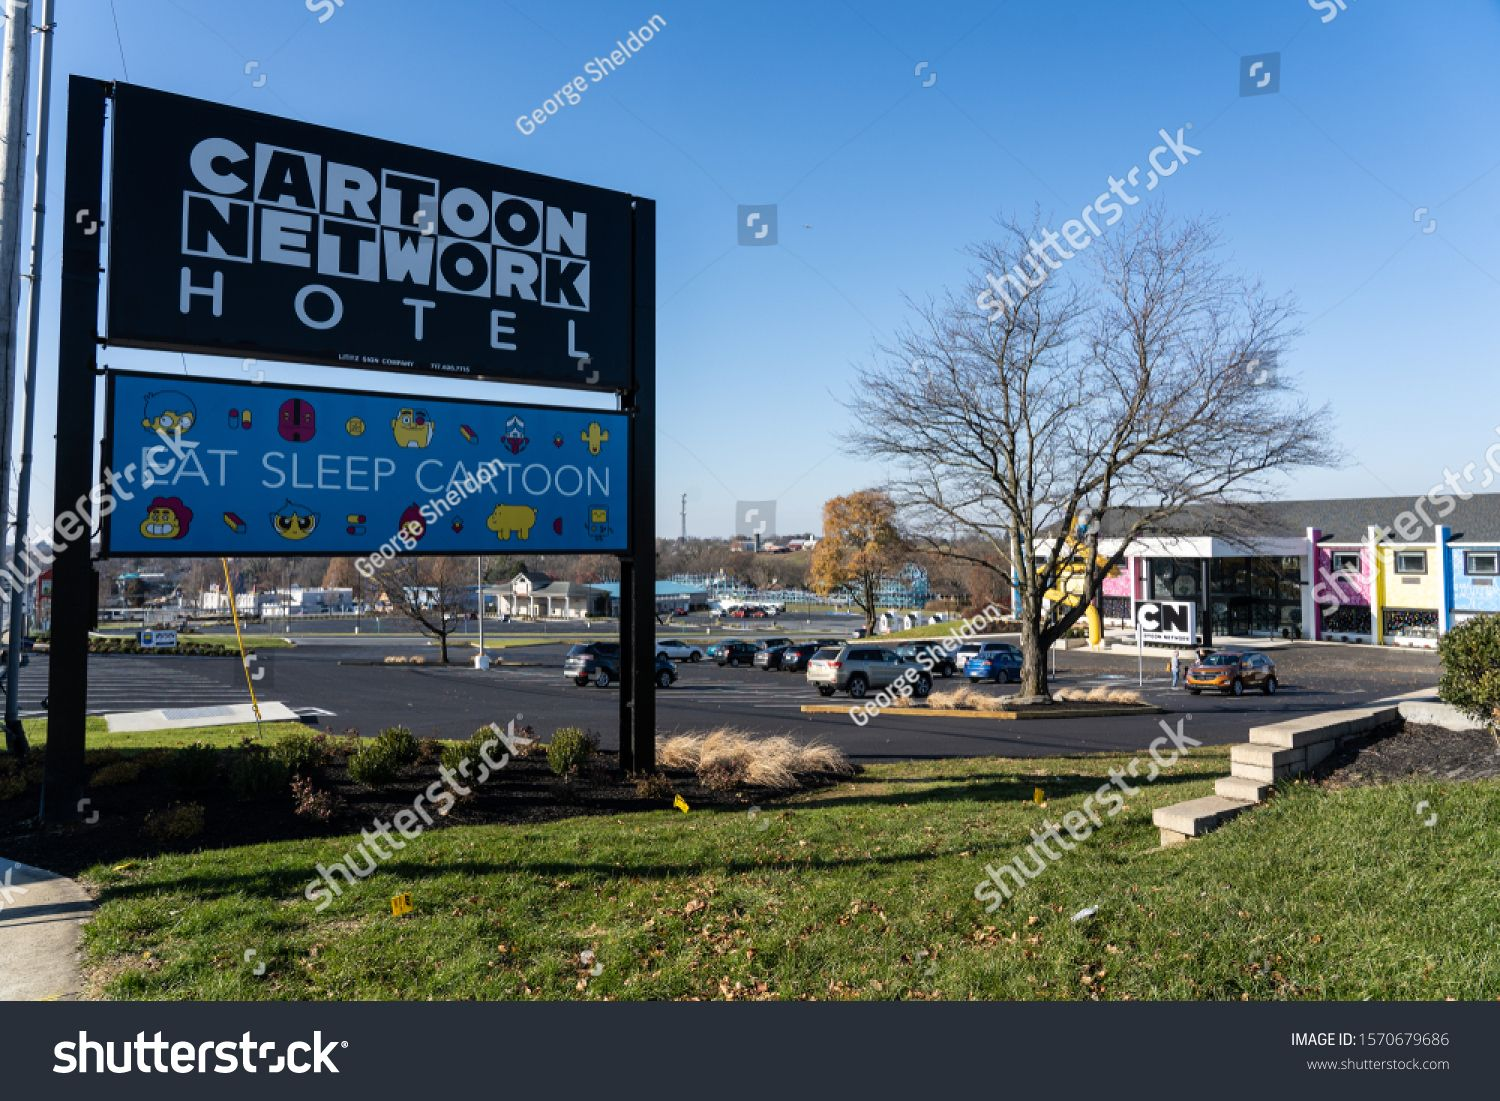 Lancaster Pa Usa November 25 2019 The Cartoon Network Hotel